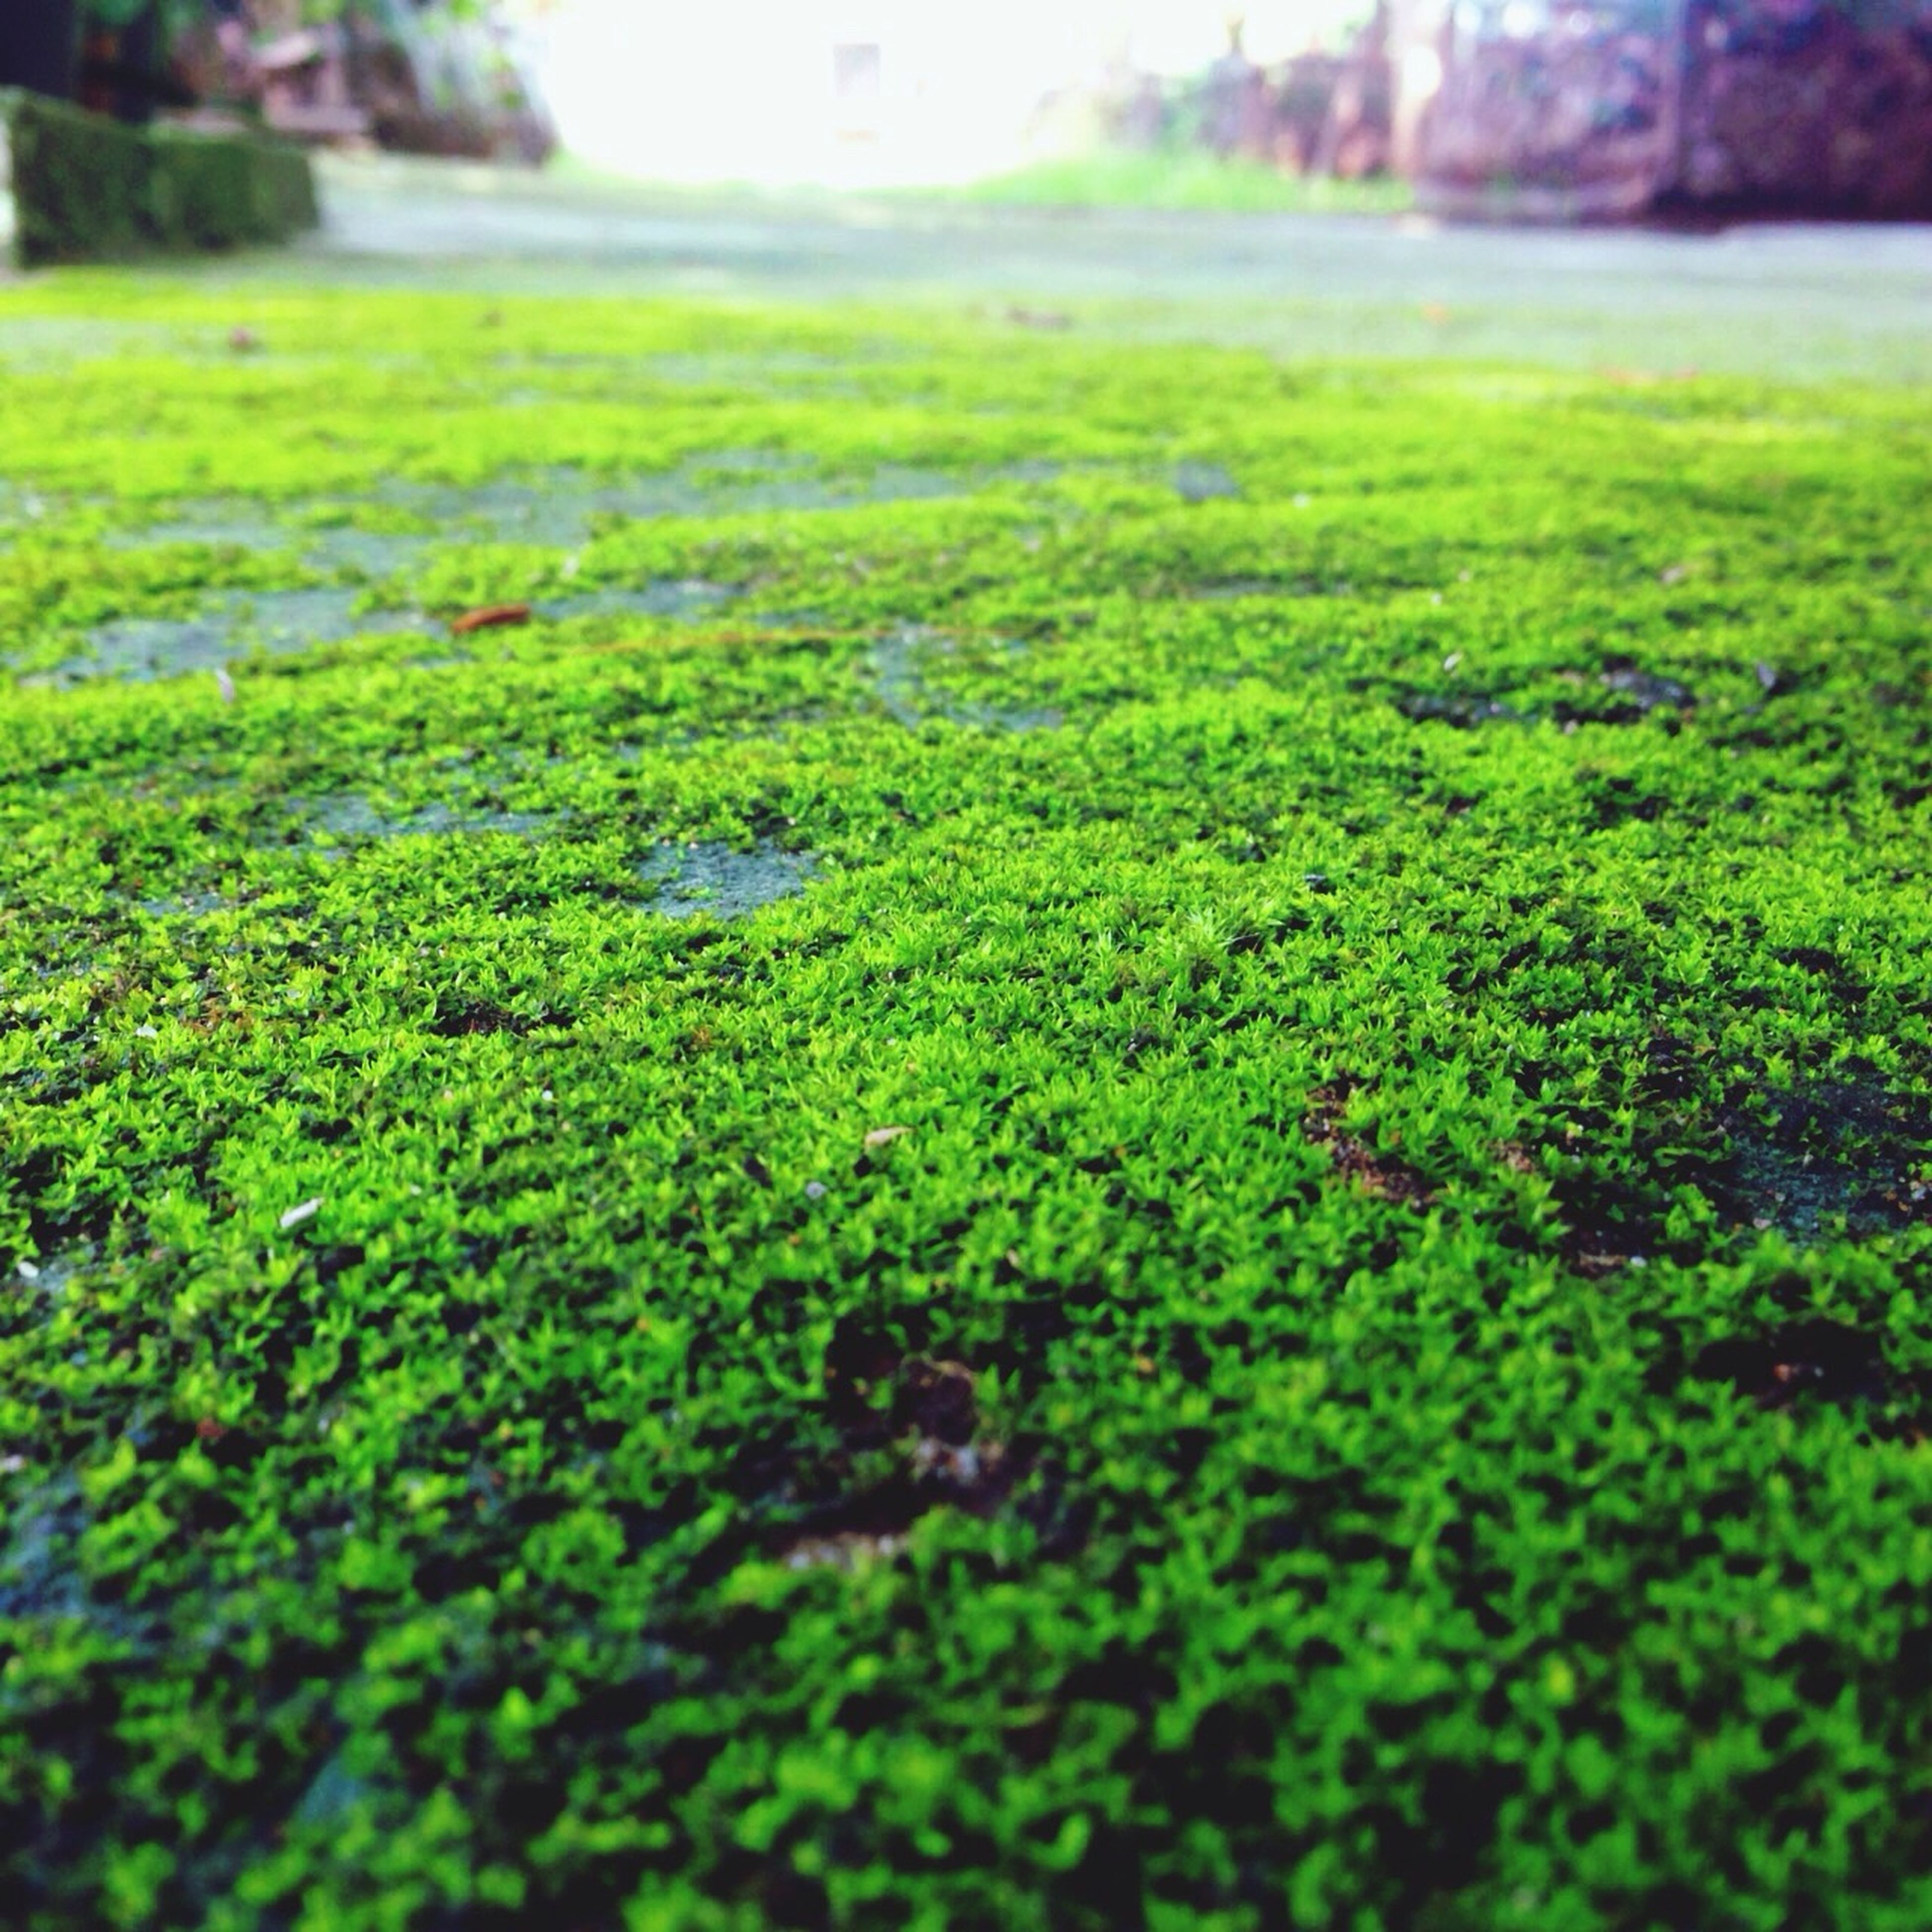 green color, grass, growth, selective focus, plant, nature, surface level, focus on foreground, field, beauty in nature, green, tranquility, day, outdoors, moss, close-up, lush foliage, no people, leaf, growing